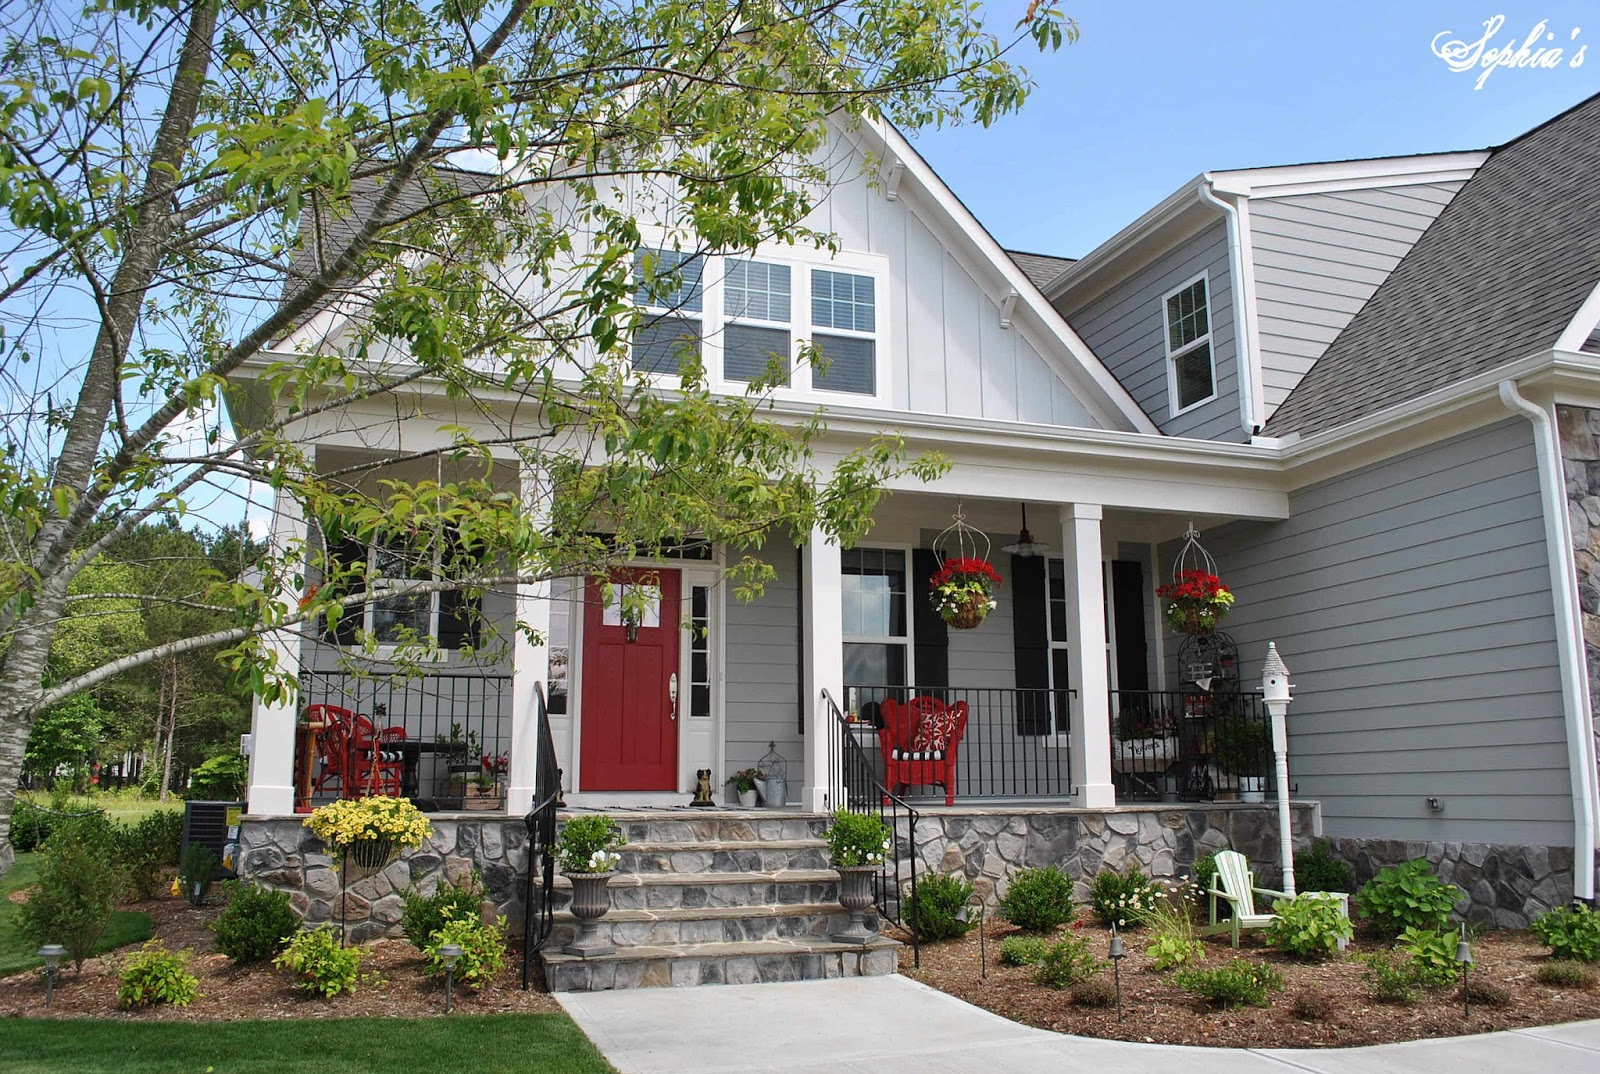 Sophia 39 s farmhouse style front porch with pops of red for Farmhouse style siding